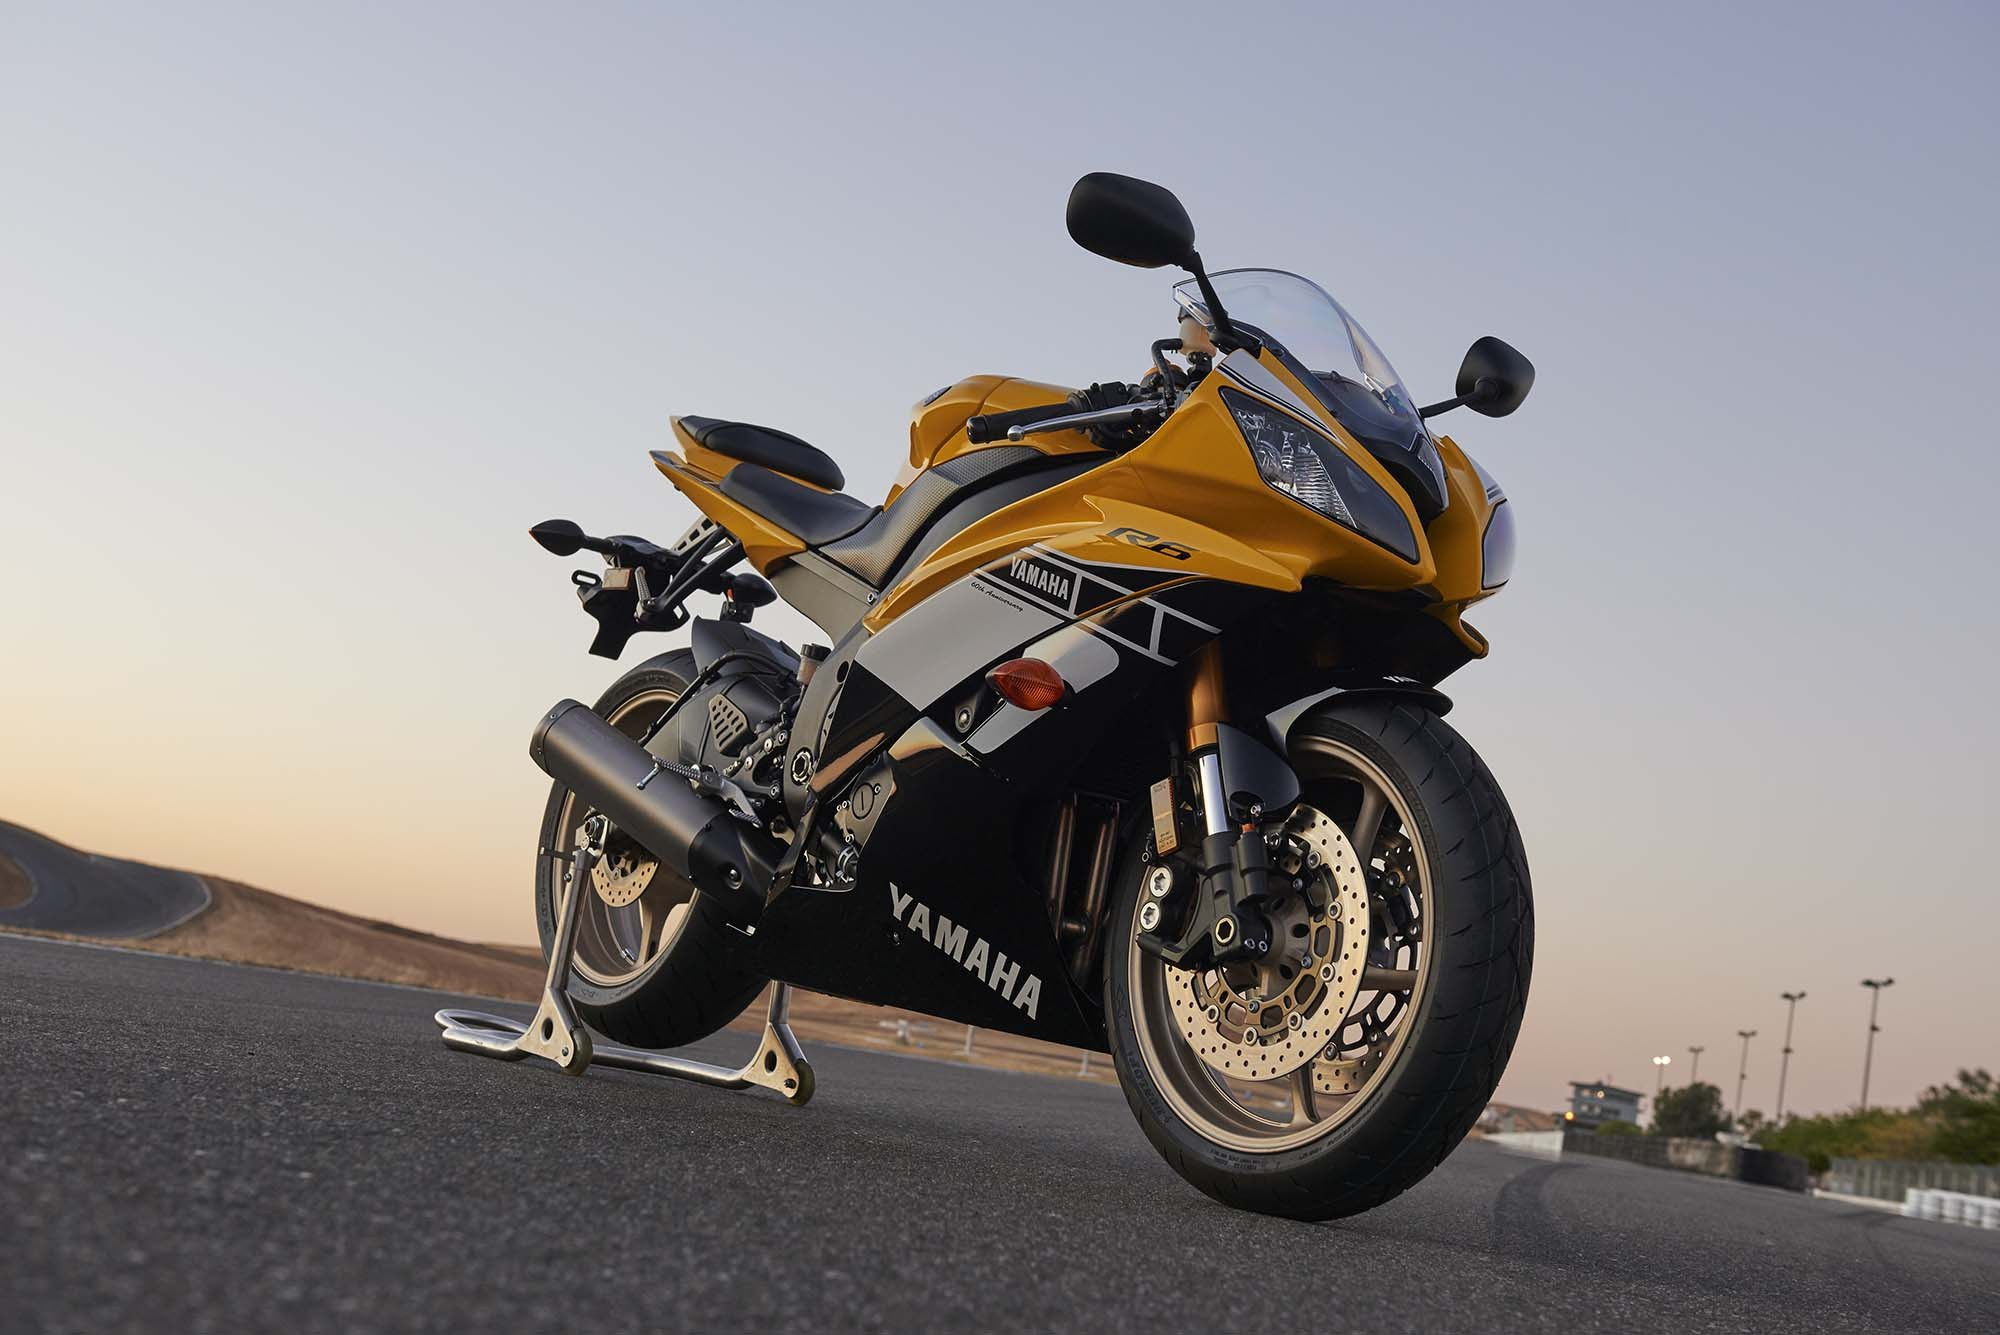 Yamaha Yzf R6 And Super Tenere Available In 60th